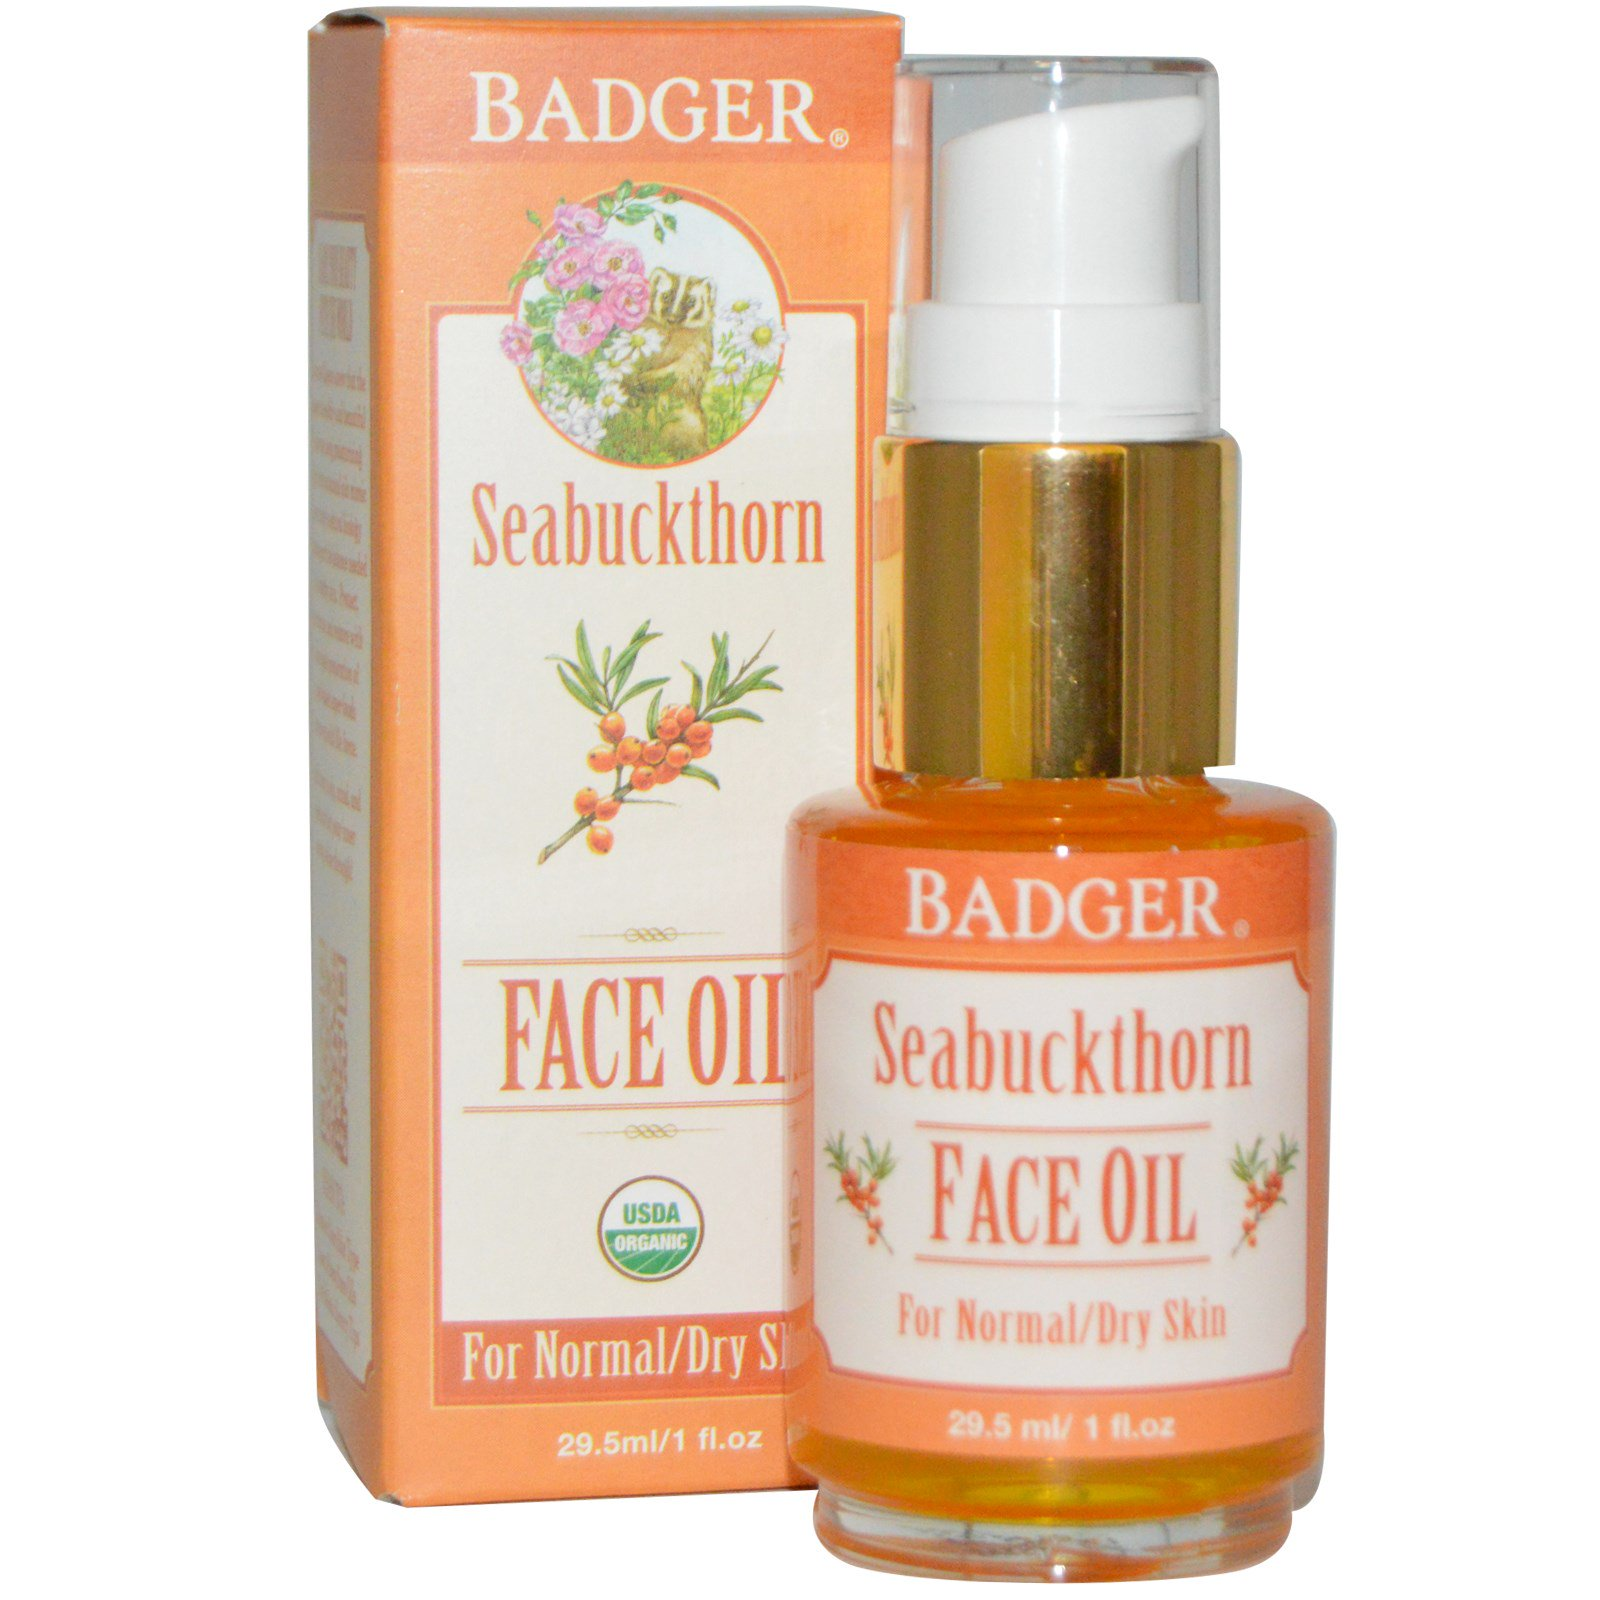 Face Cleansing Oil Seabuckthorn - 2 fl. oz. by Badger (pack of 4) Floral Therapy Facial Sheet Stress Relief Mask Chamomile Patchouli - 1 Sheet(s) by Florapy (pack of 1)